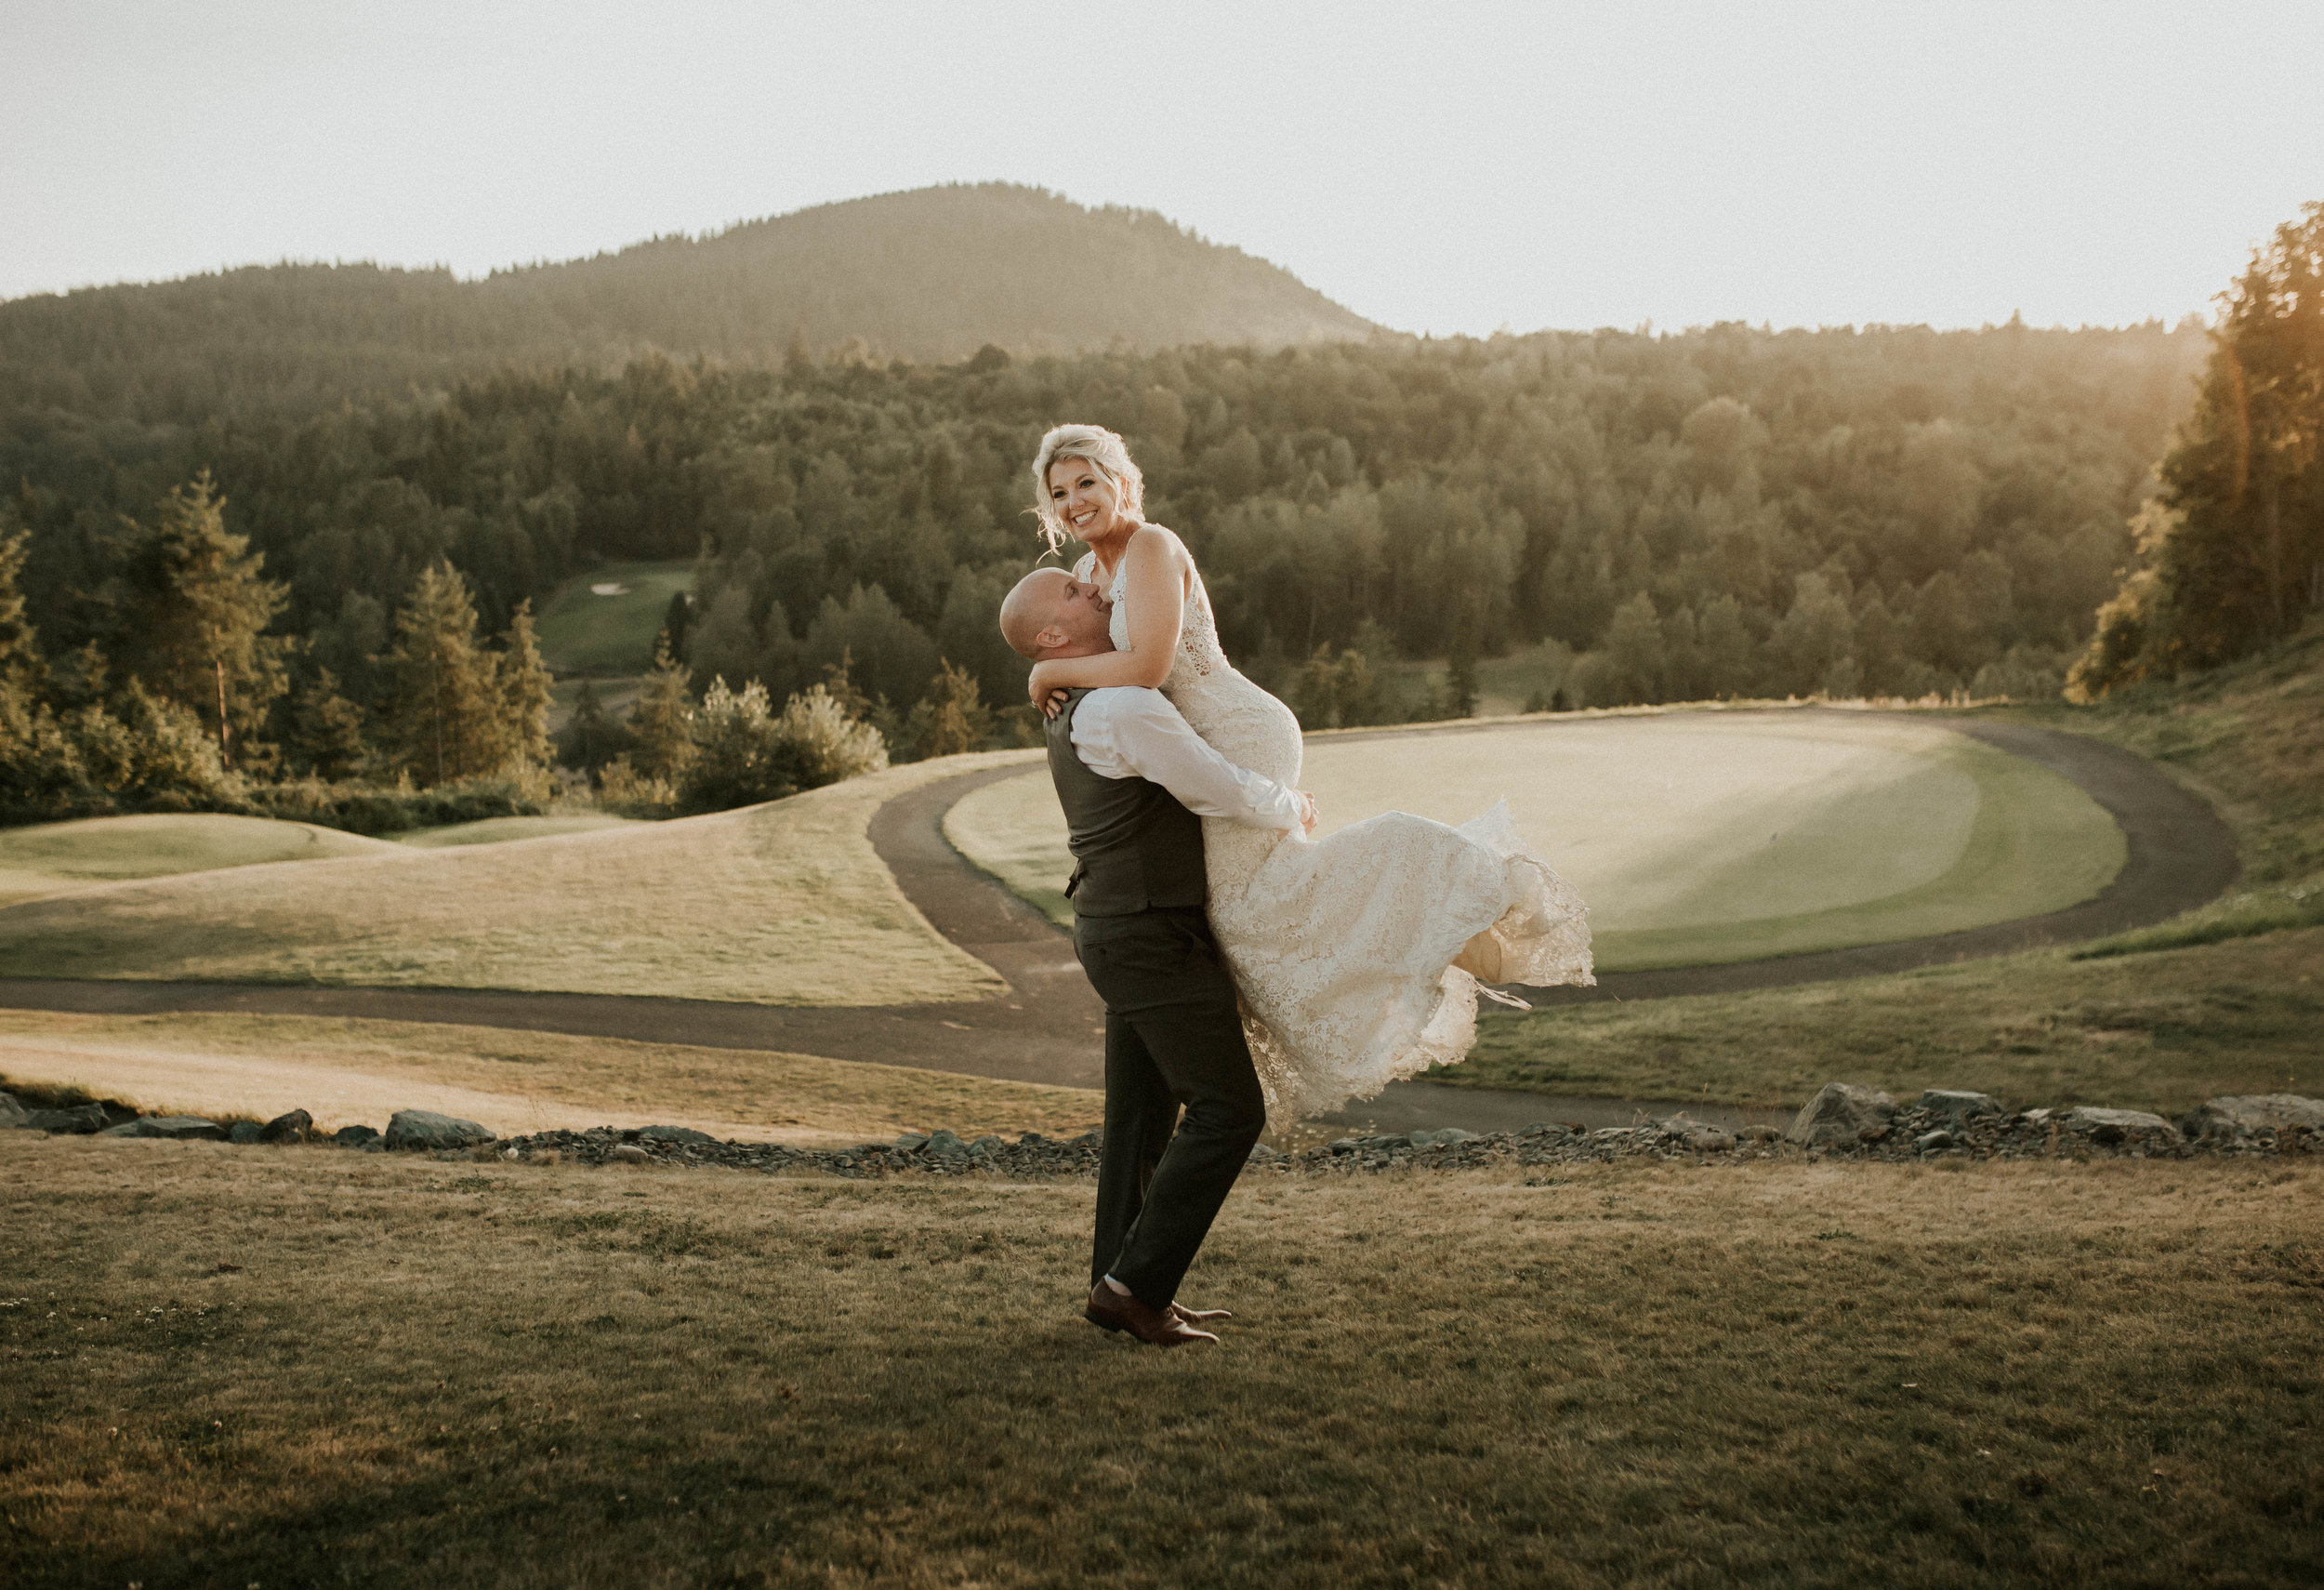 seattle-everett-washington-eaglemont-golf-course-wedding-anna-tee-photography